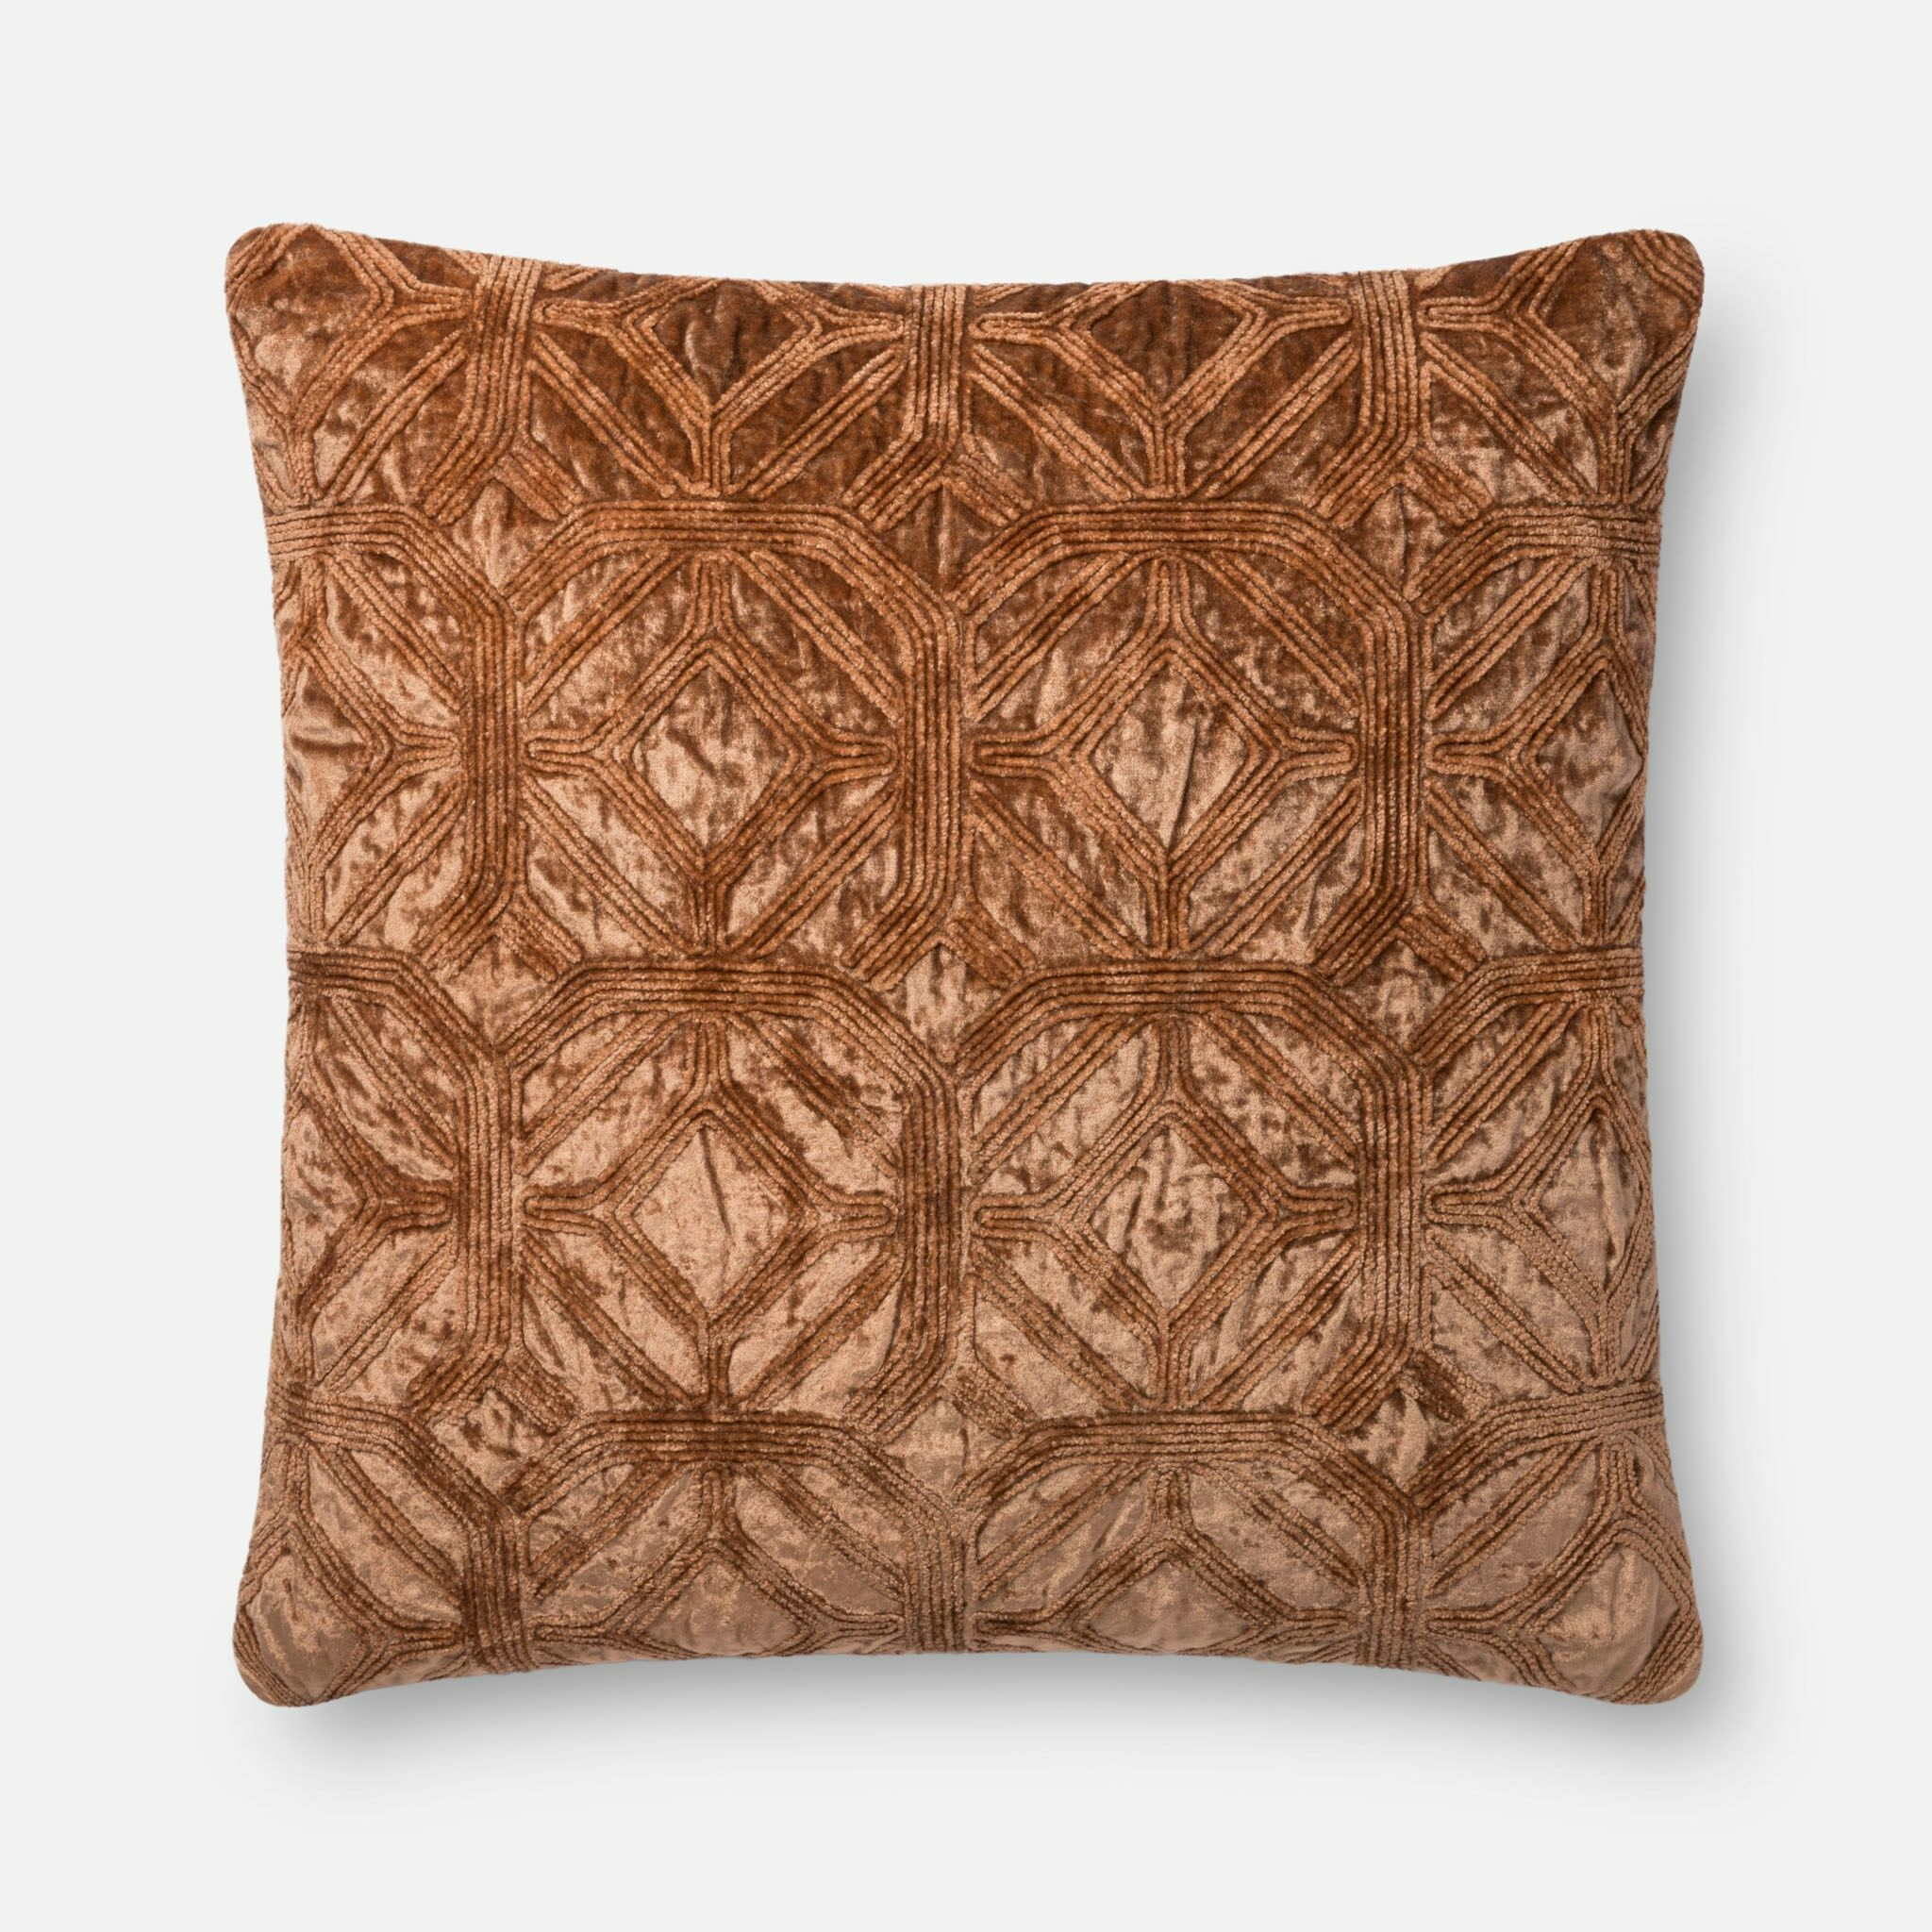 Throw Pillow Fill Material: Polyester/Polyfill